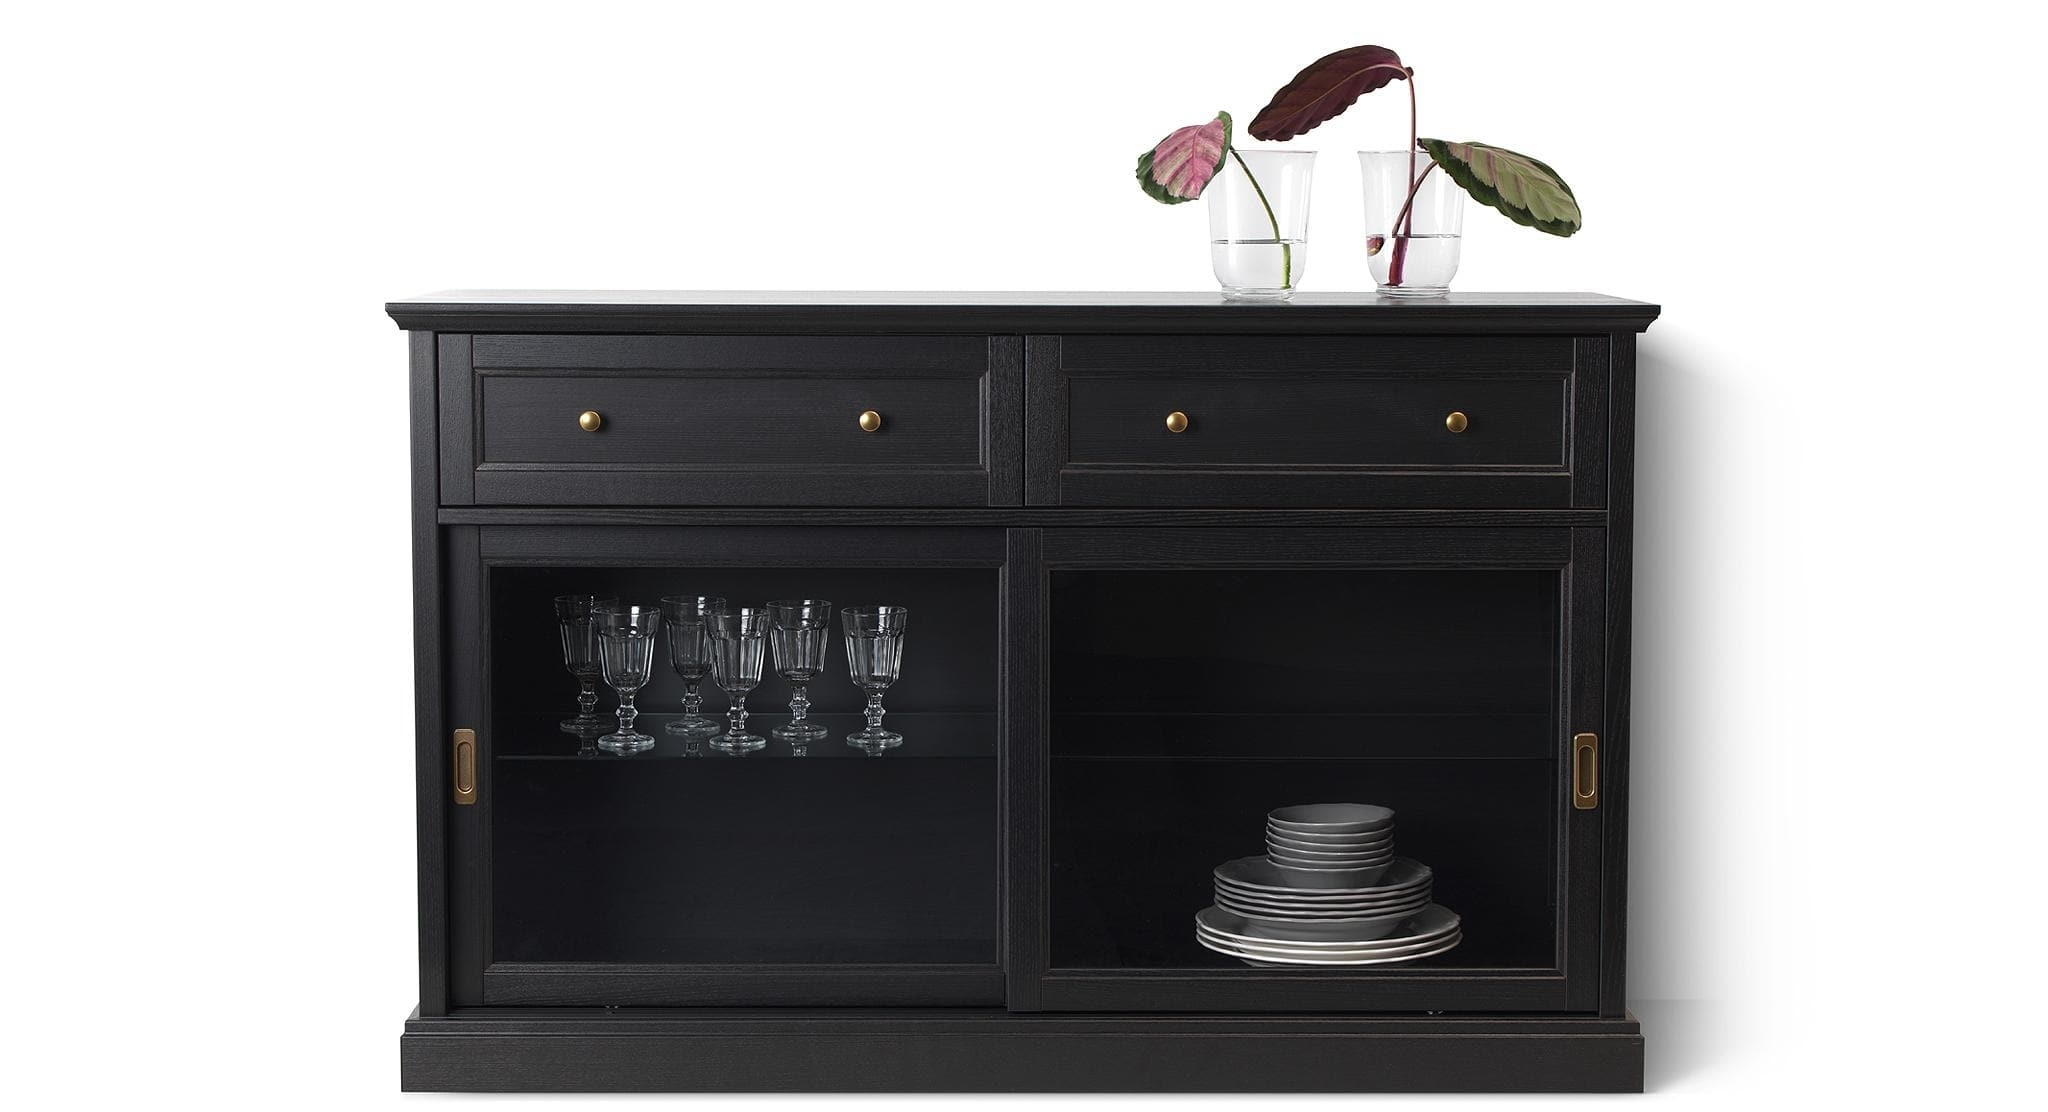 Sideboards & Buffet Cabinets | Ikea in Blue Stone Light Rustic Black Sideboards (Image 25 of 30)